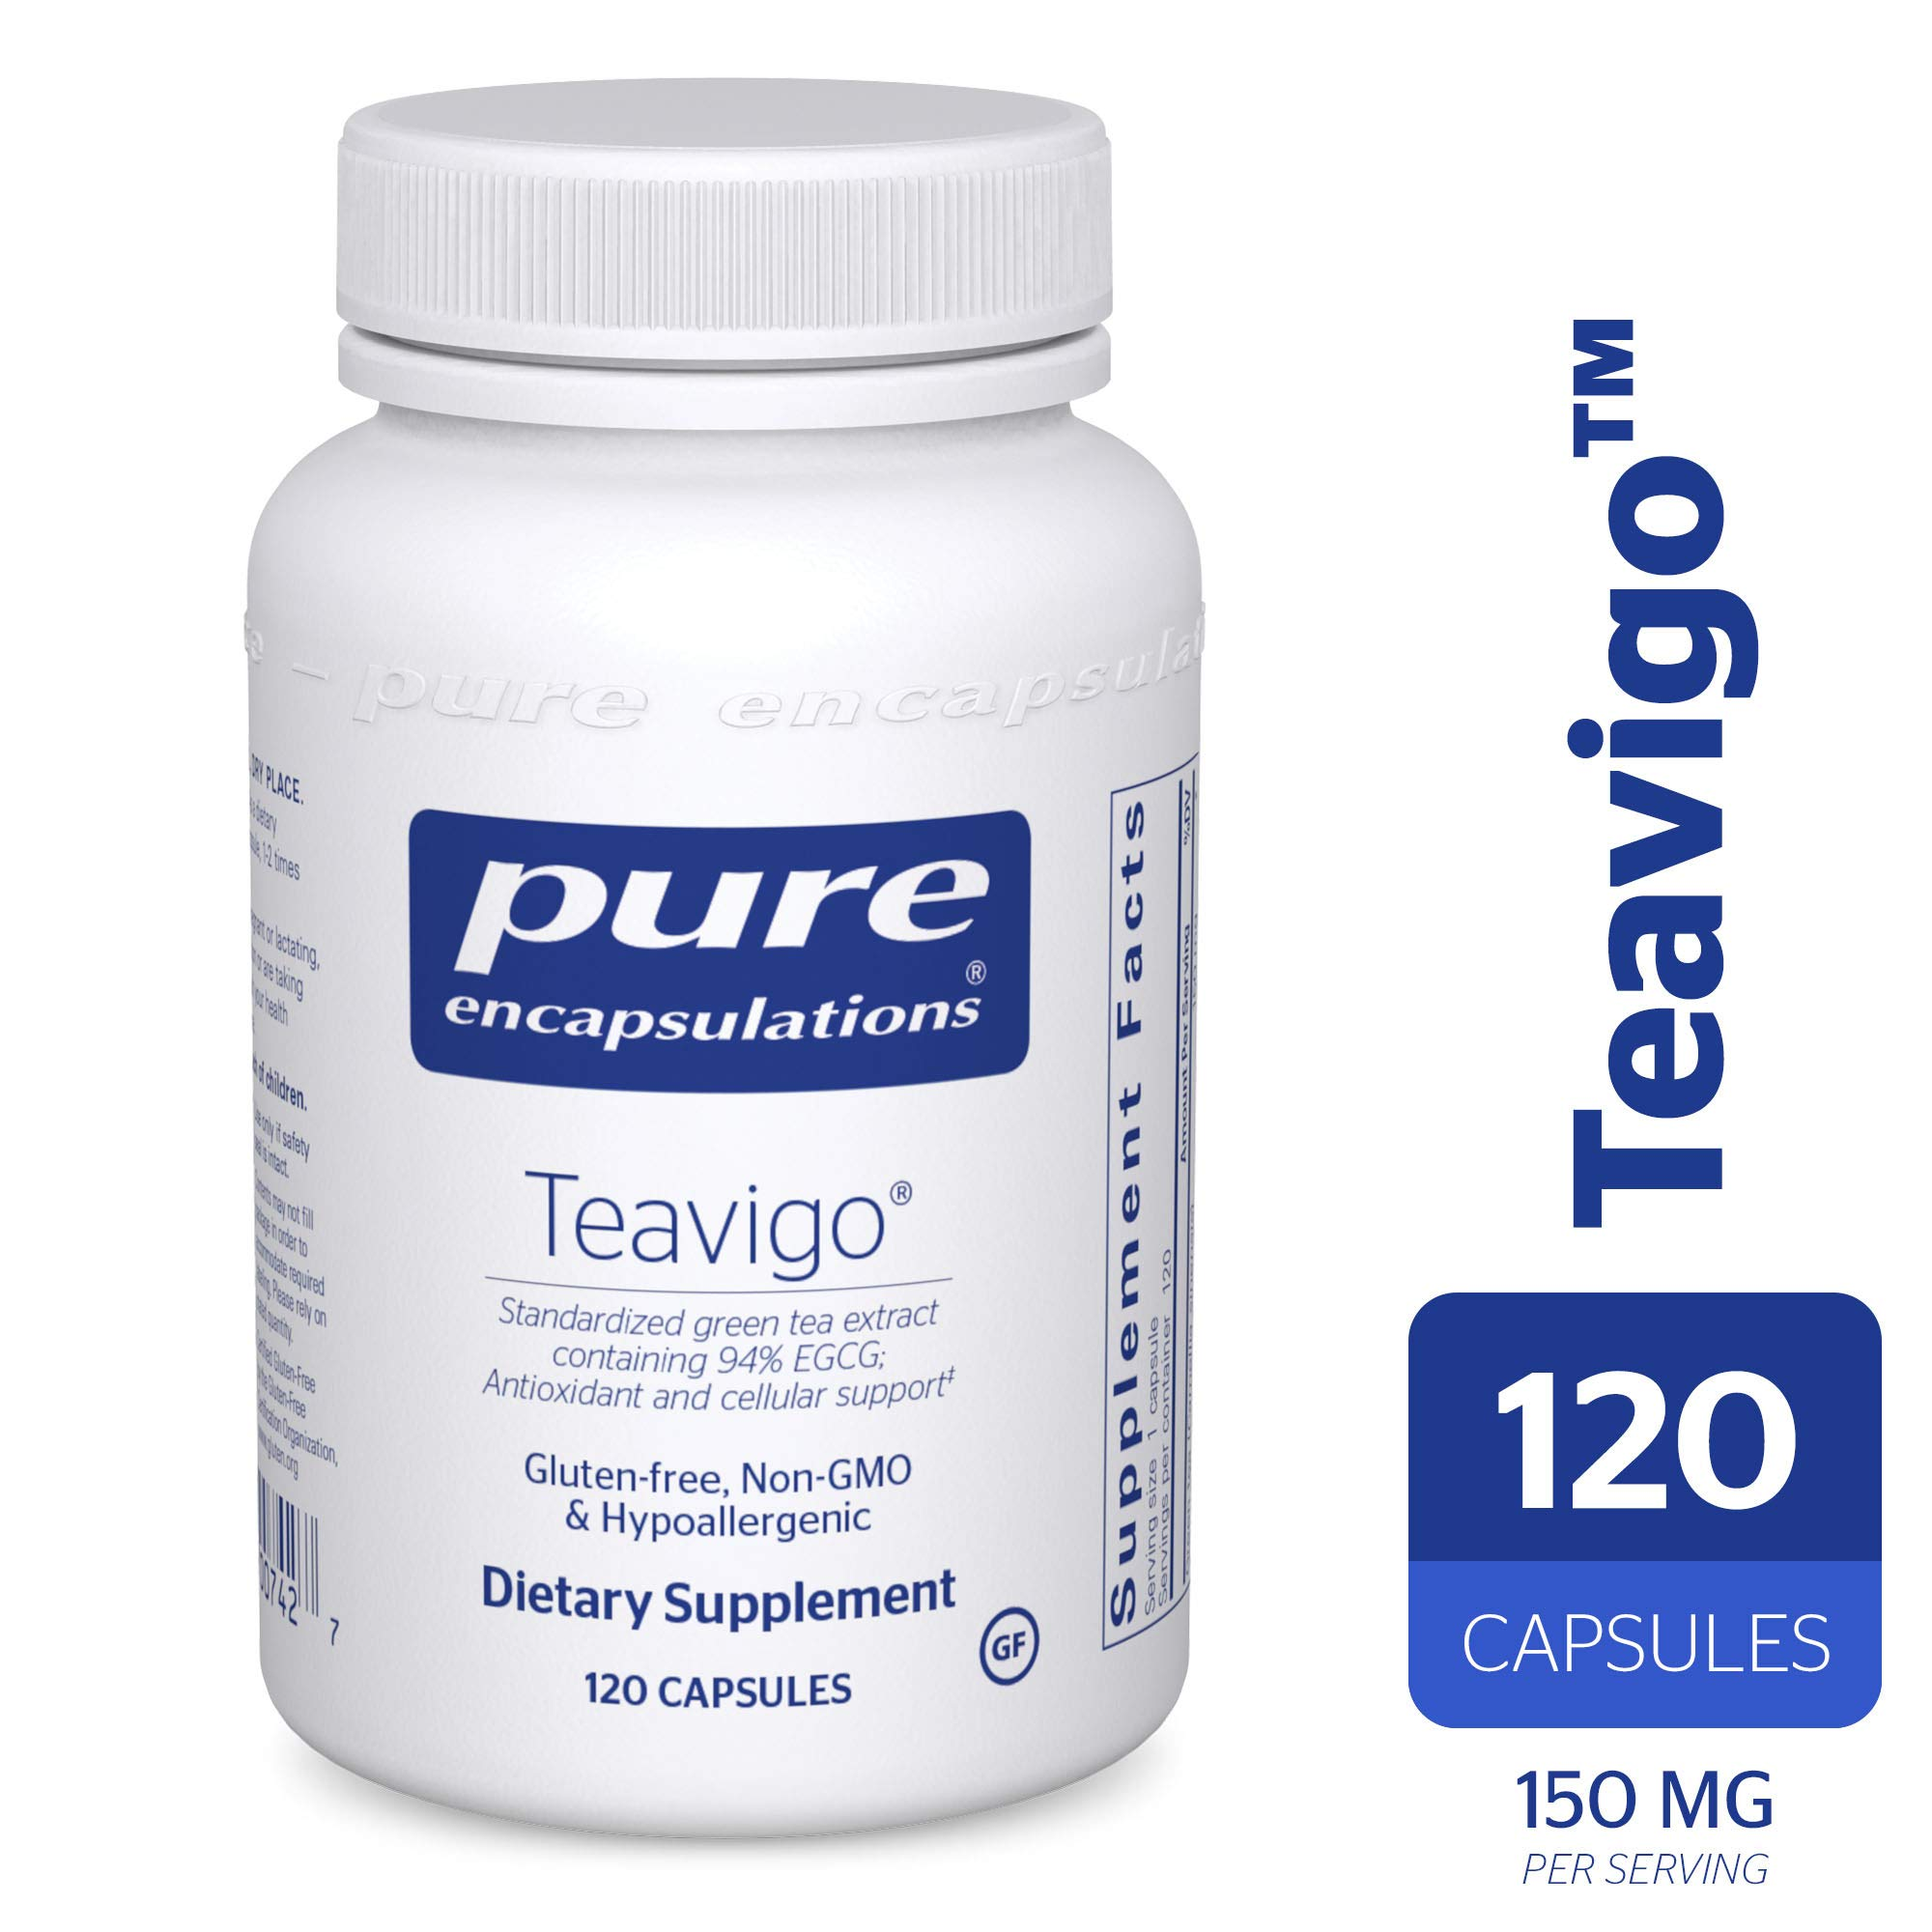 Pure Encapsulations - Teavigo - Hypoallergenic Supplement with Caffeine-Free Green Tea Extract to Provide Antioxidant and Cellular Support* - 120 Capsules